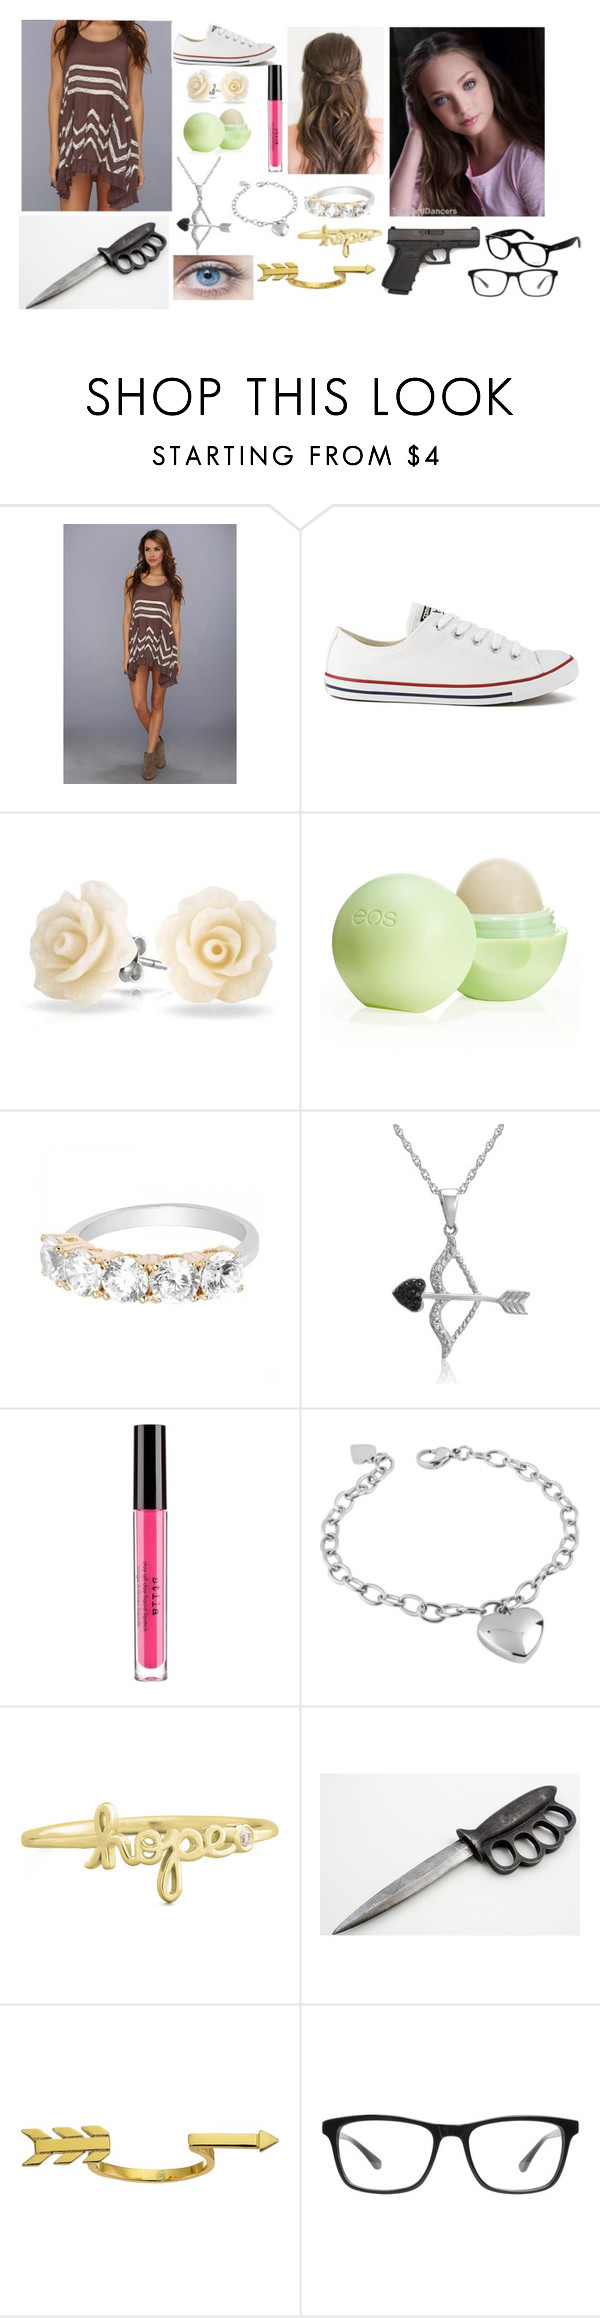 """twd"" by sweetheart20045 ❤ liked on Polyvore featuring Free People, Converse, Bling Jewelry, Eos, Amanda Rose Collection, Stila, West Coast Jewelry, Sydney Evan, Gorjana and Joseph Marc"